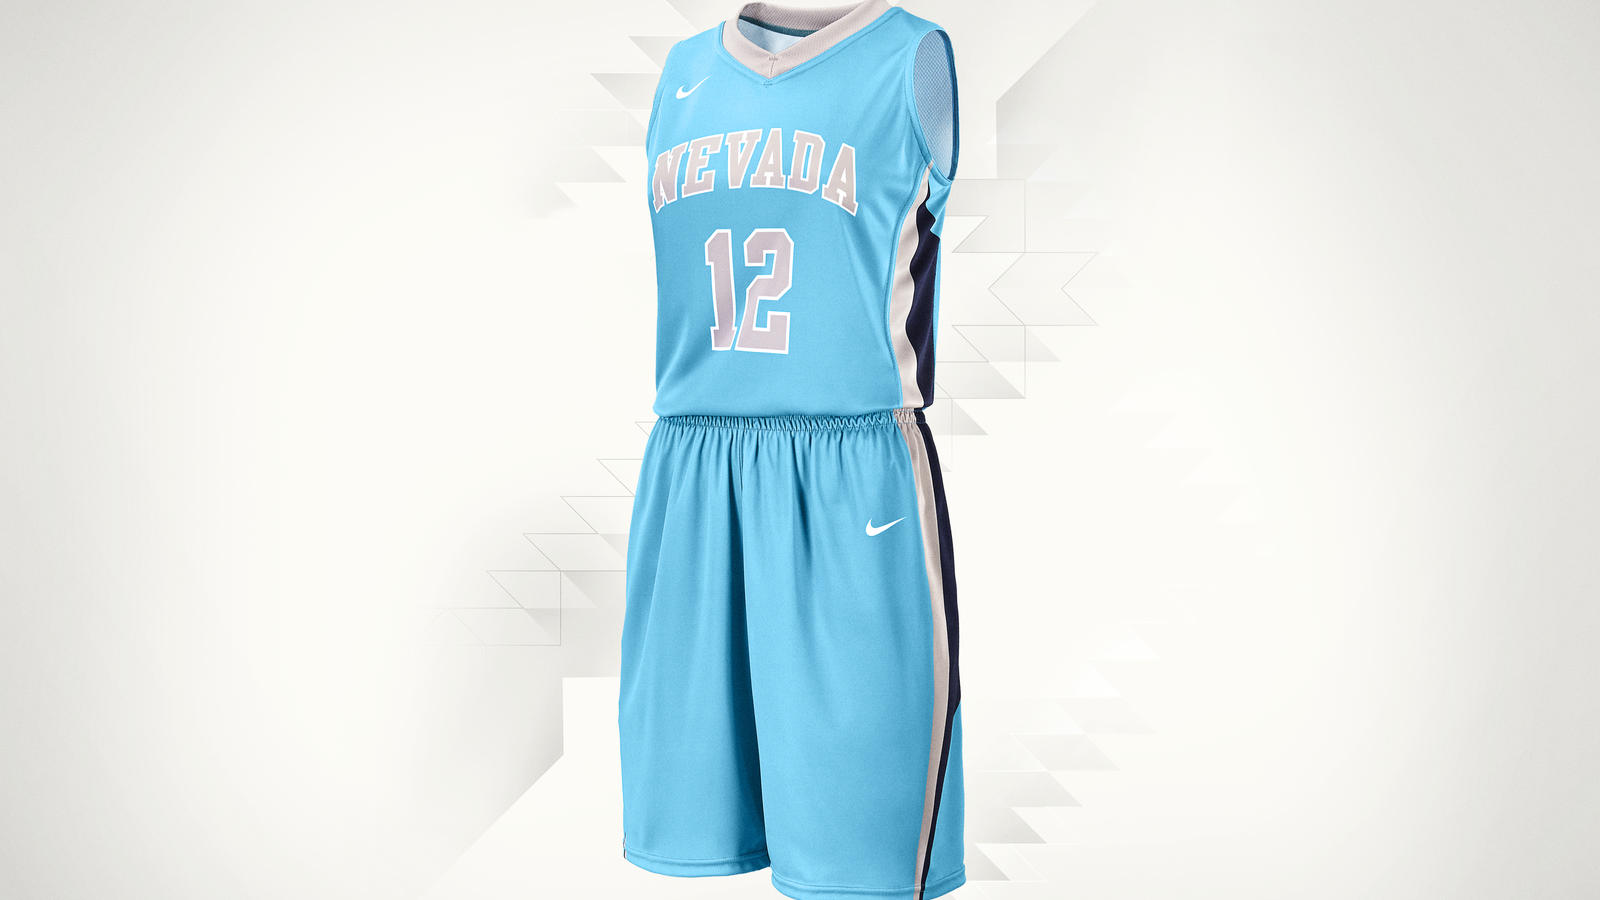 ho13_n7_ncaa_nevada_wmns_hero_1511